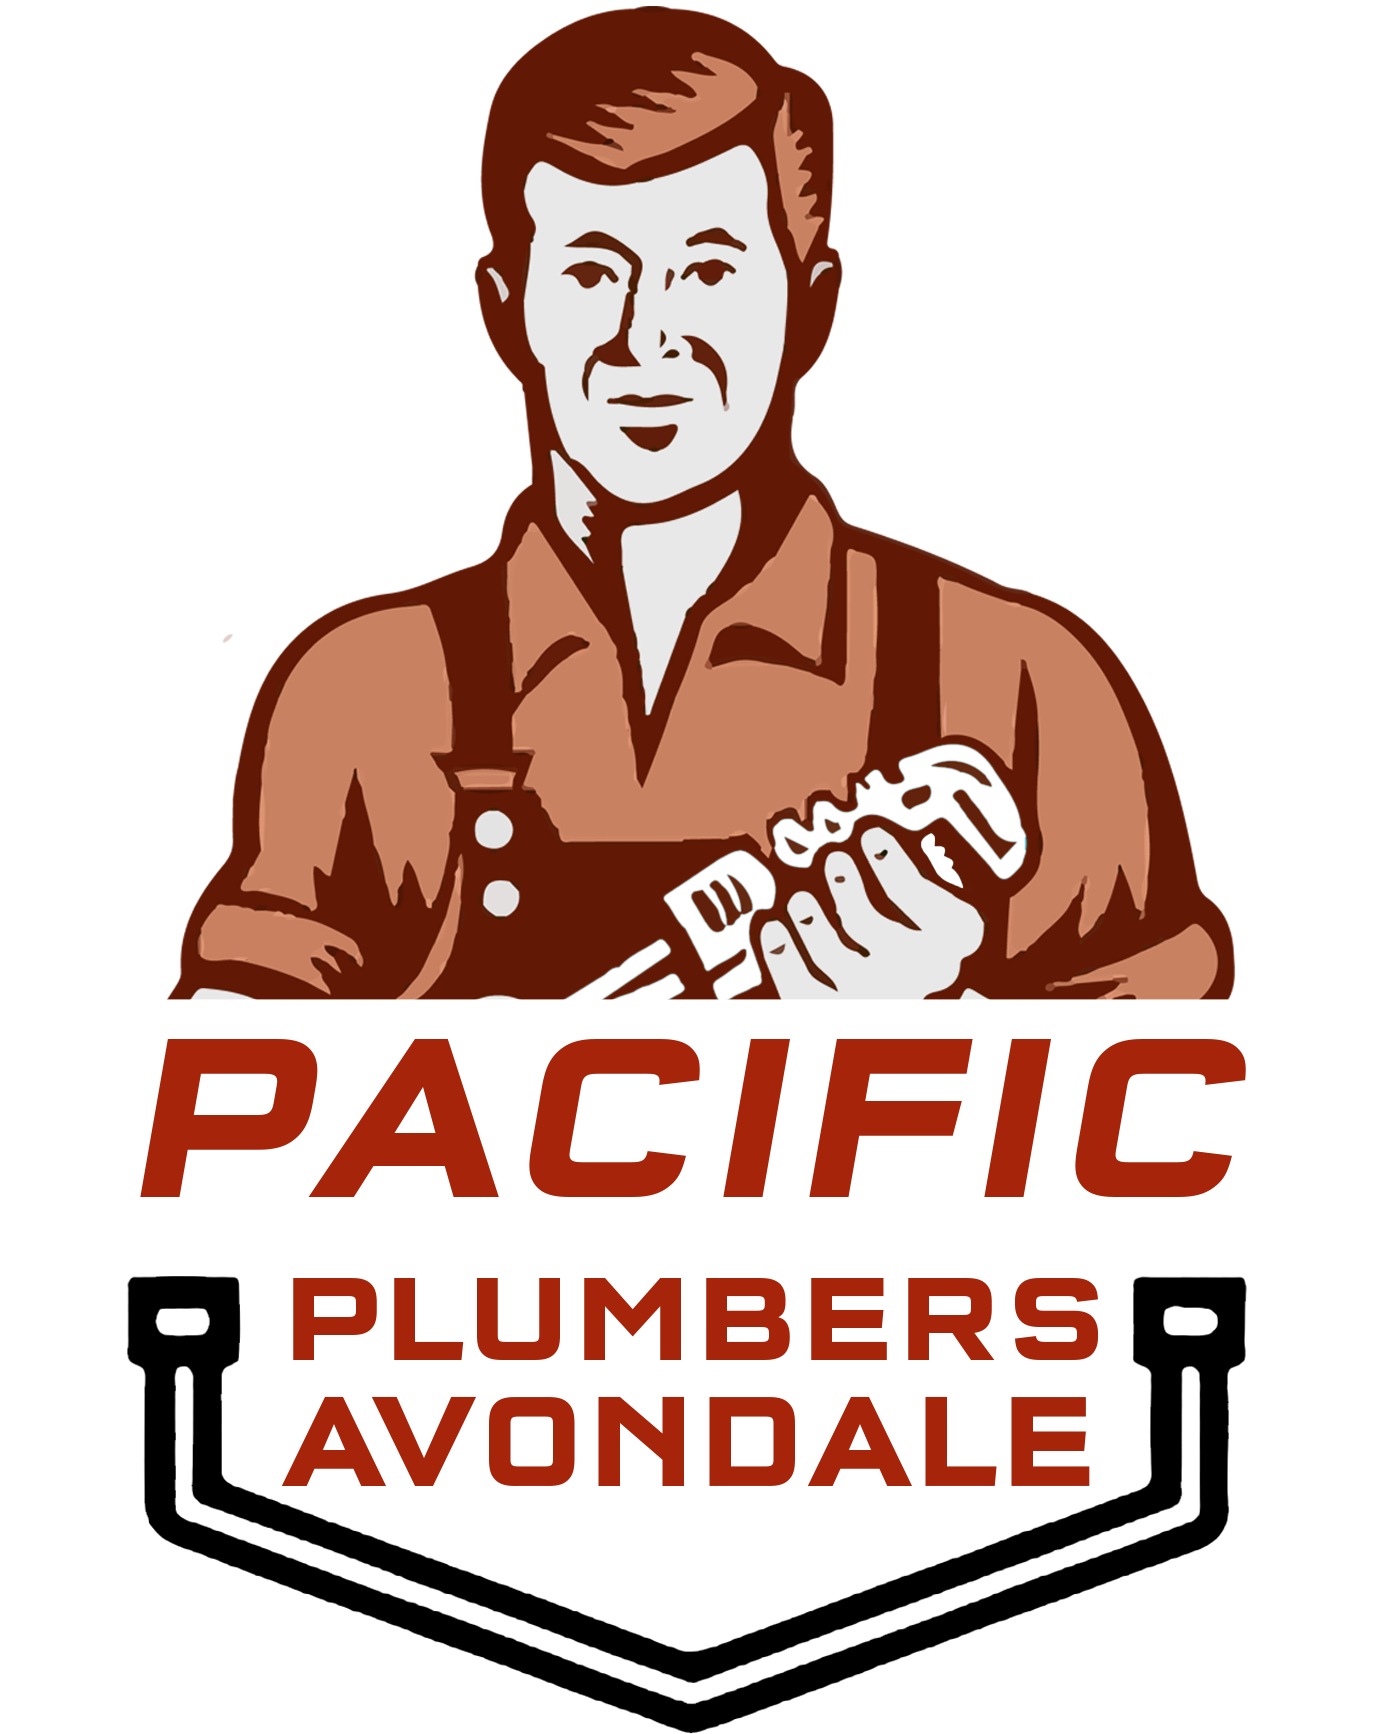 Looking For Plumbers And Gas Fitters In Avondale Pacific Plumbers Avondale Provide Excellent Service Around The Clock Cal Plumbing Blueprint Symbols Avondale